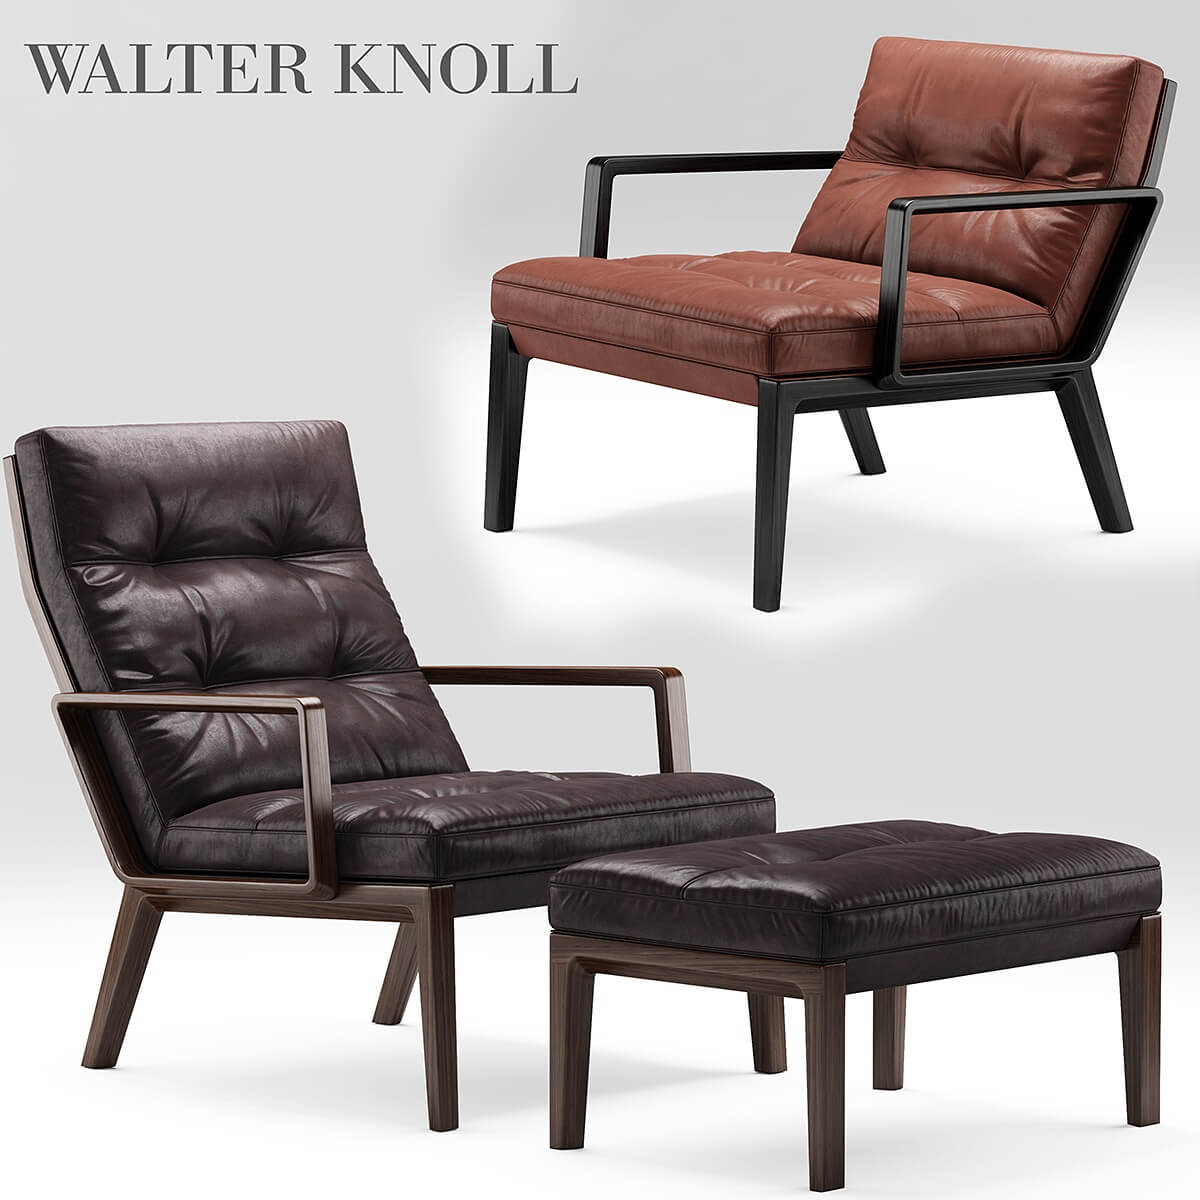 Armchair Andoo Lounge Walter Knoll 3d Model For Download